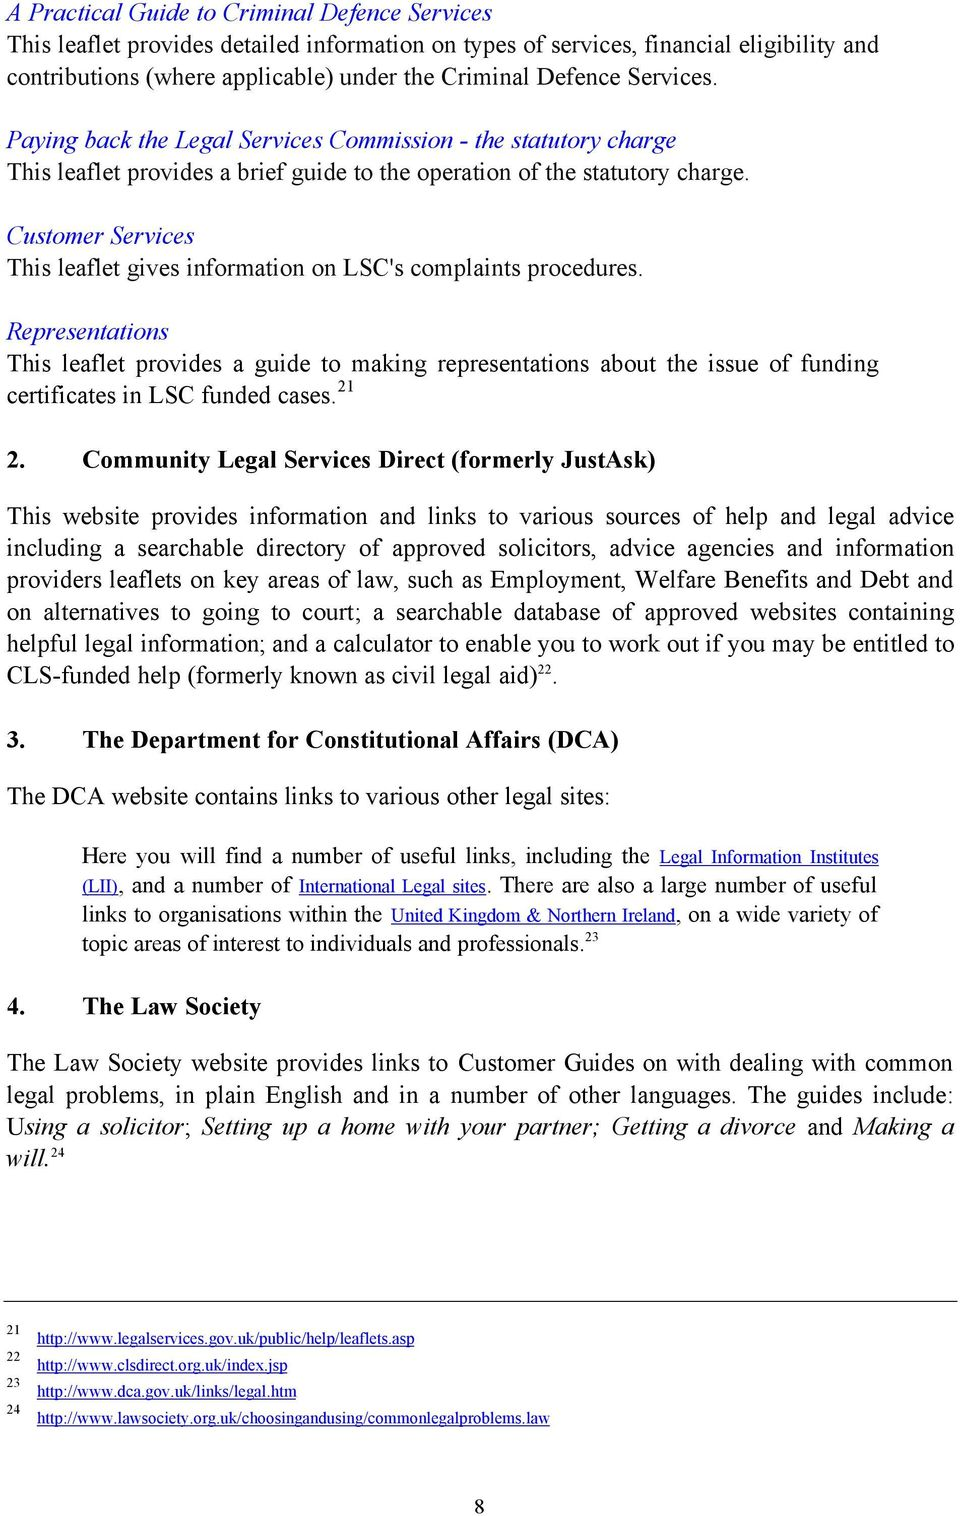 Customer Services This leaflet gives information on LSC's complaints procedures.